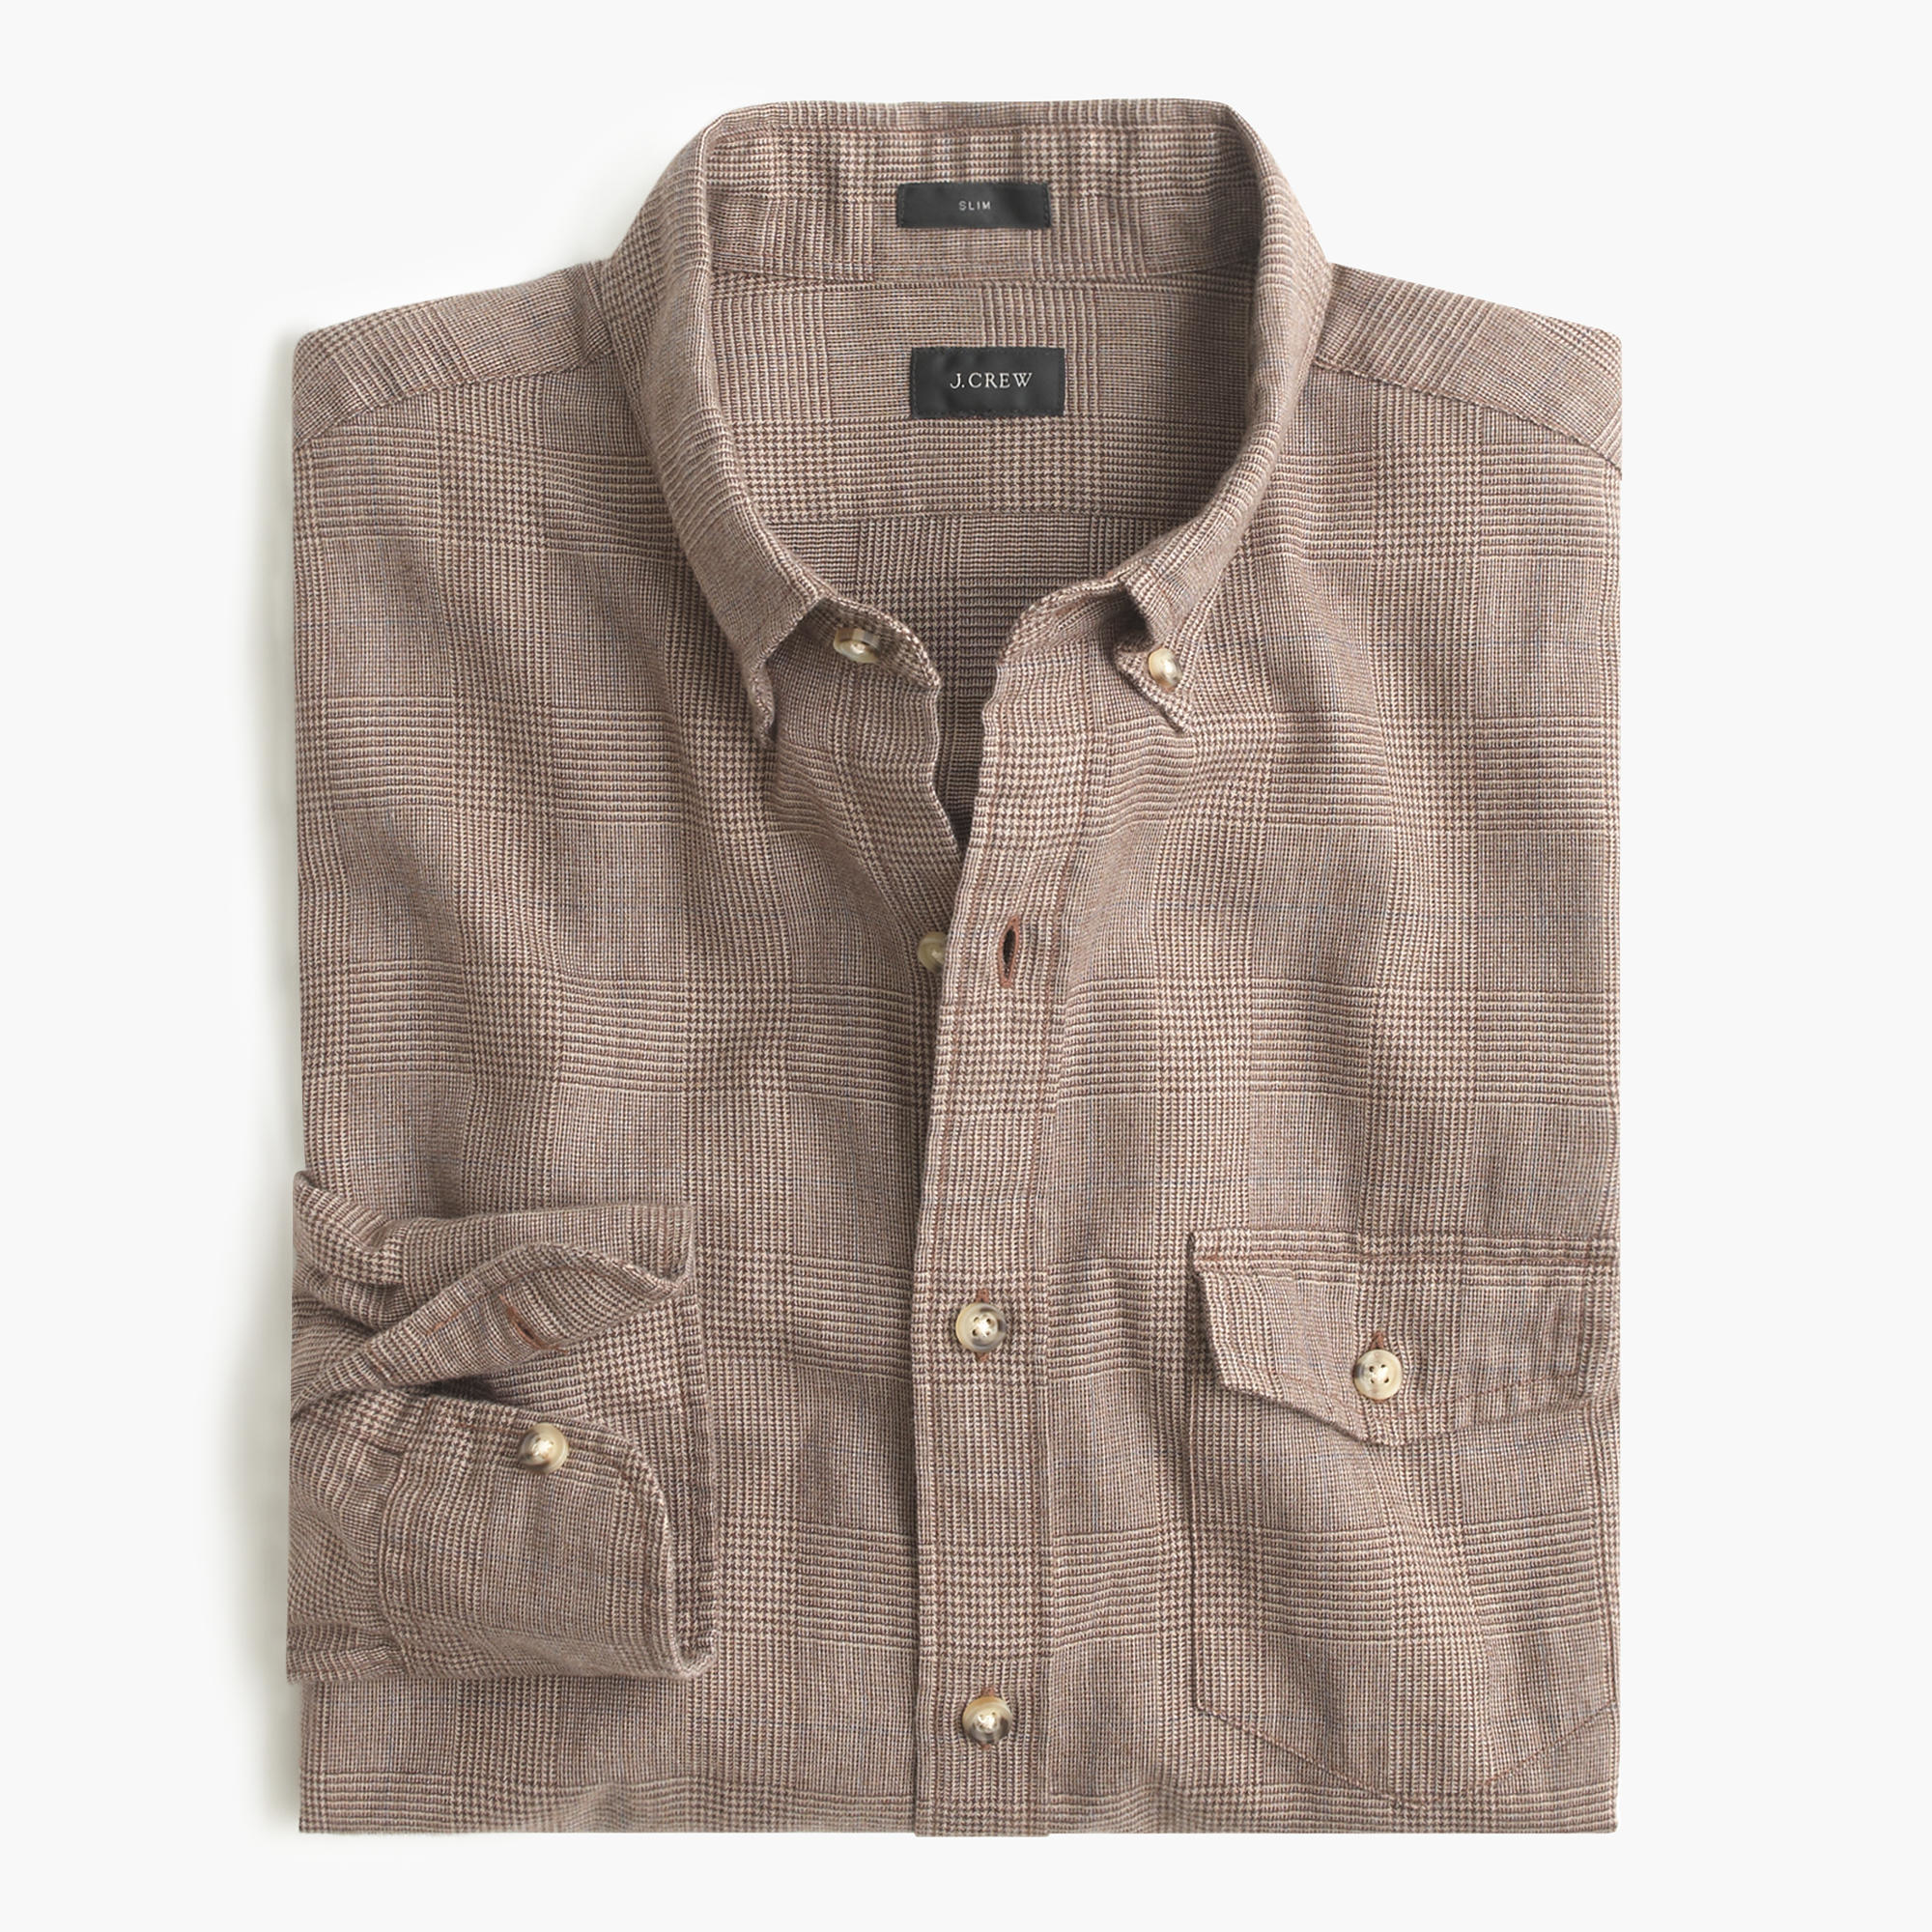 Slim brushed twill shirt in heather harvest glen for Brushed cotton twill shirt